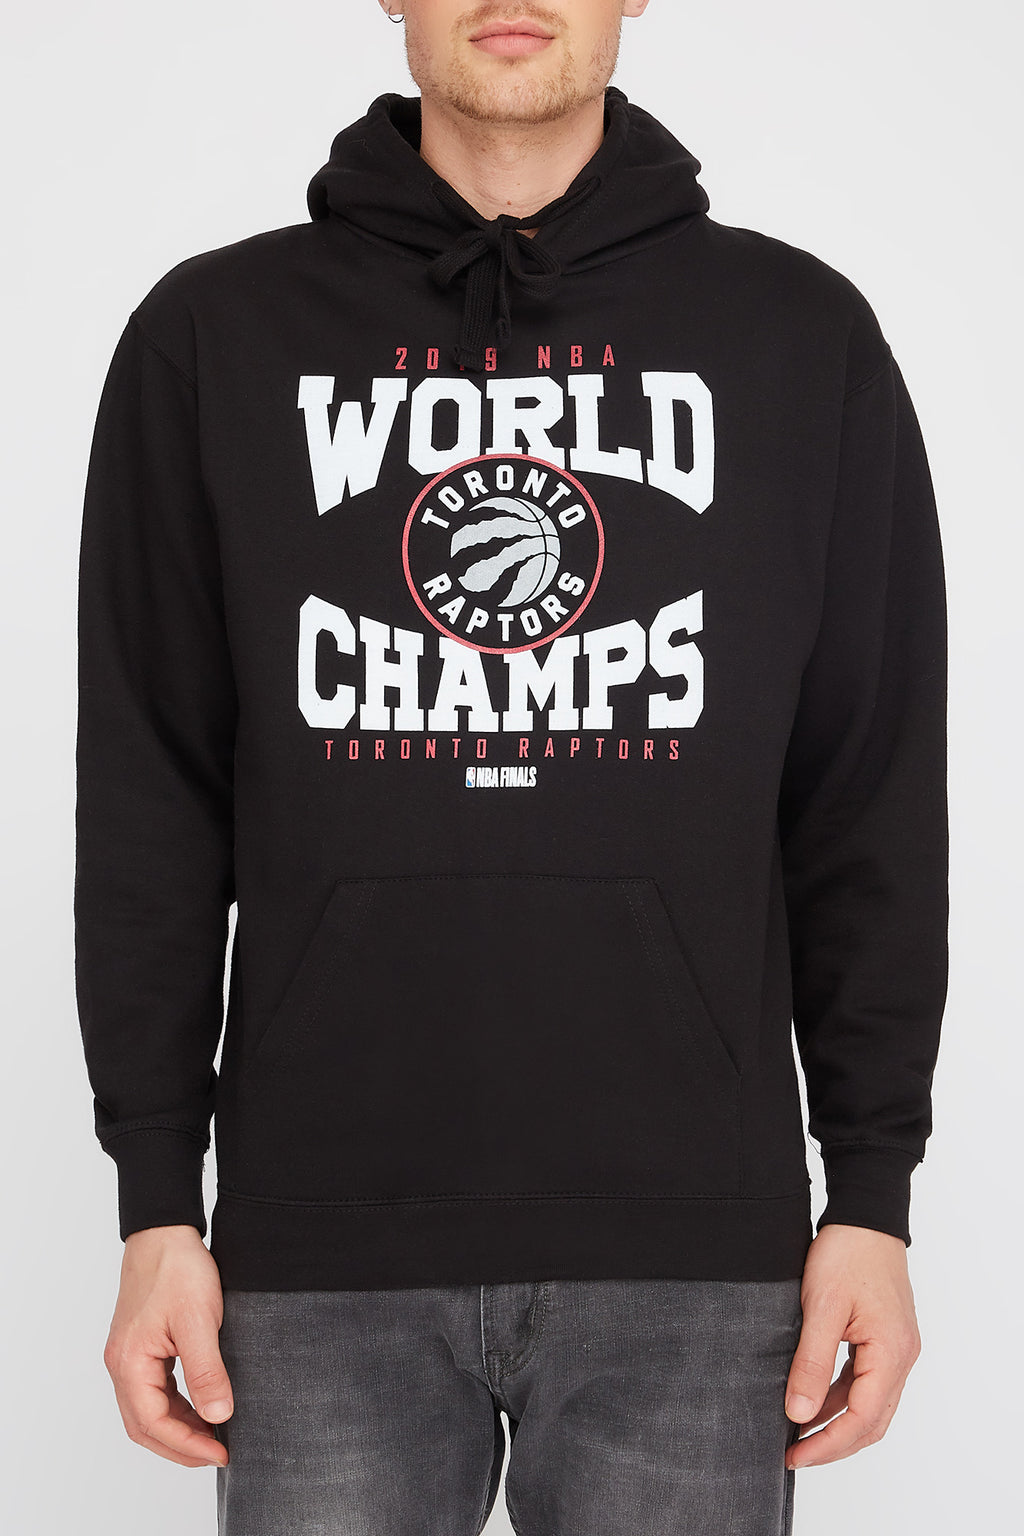 Mens Toronto Raptors World Champs Hoodie